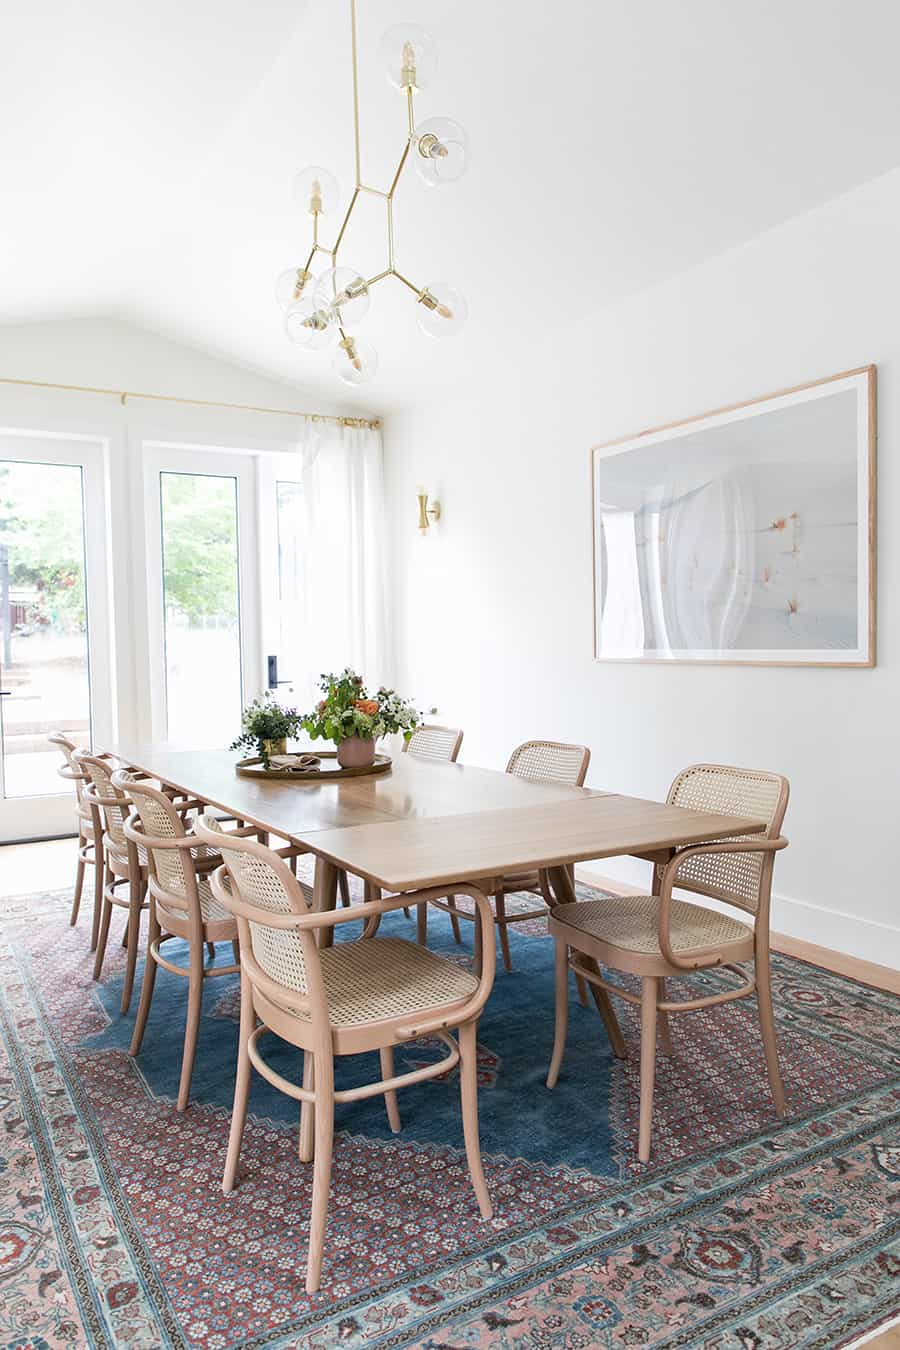 Dining room with blue rug, long table and white curtains